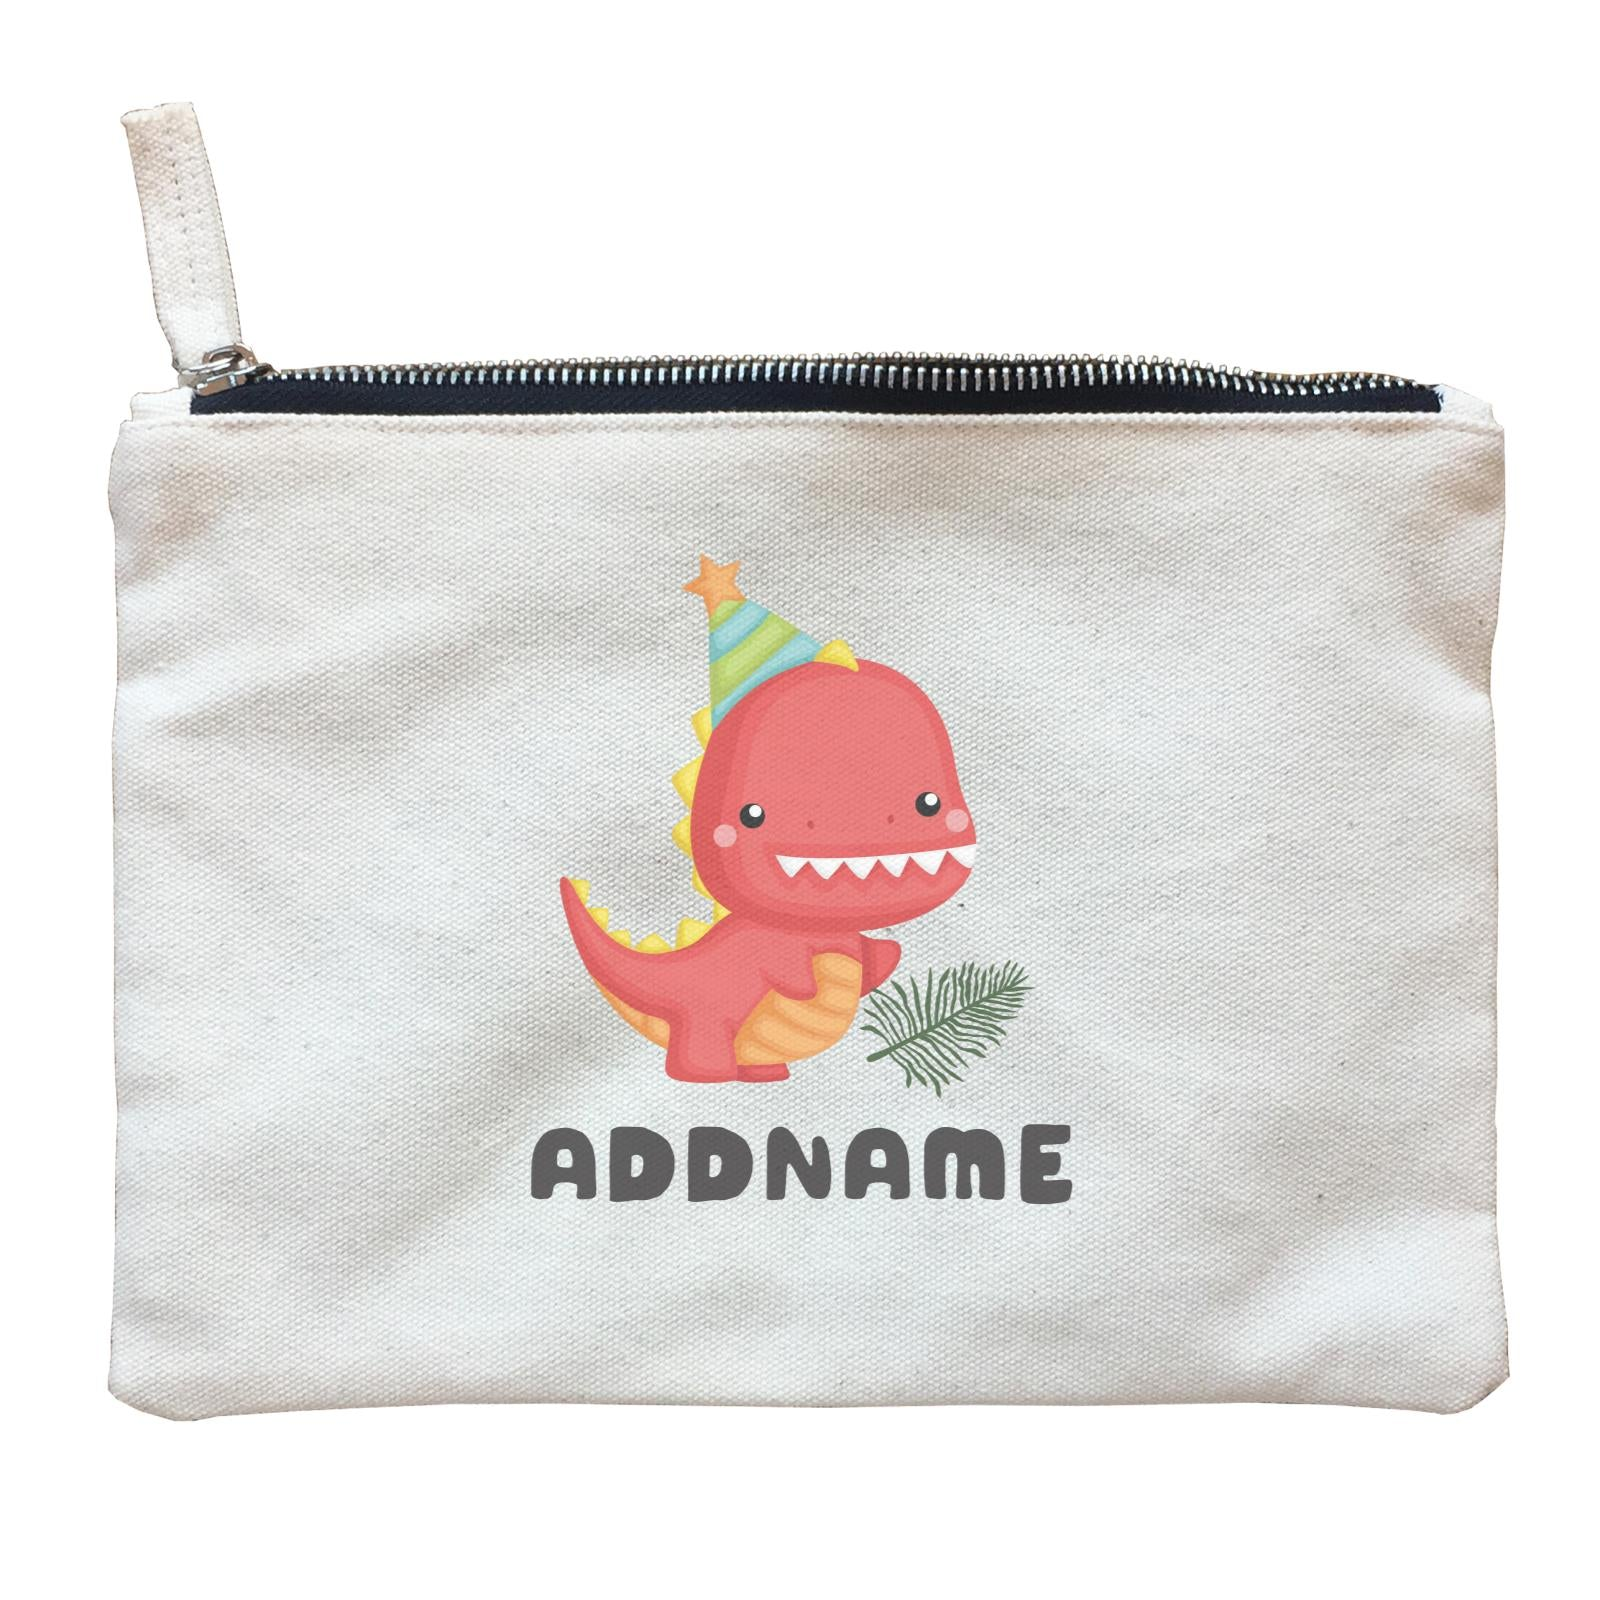 Birthday Dinosaur Happy Red Rex Wearing Party Hat Addname Zipper Pouch